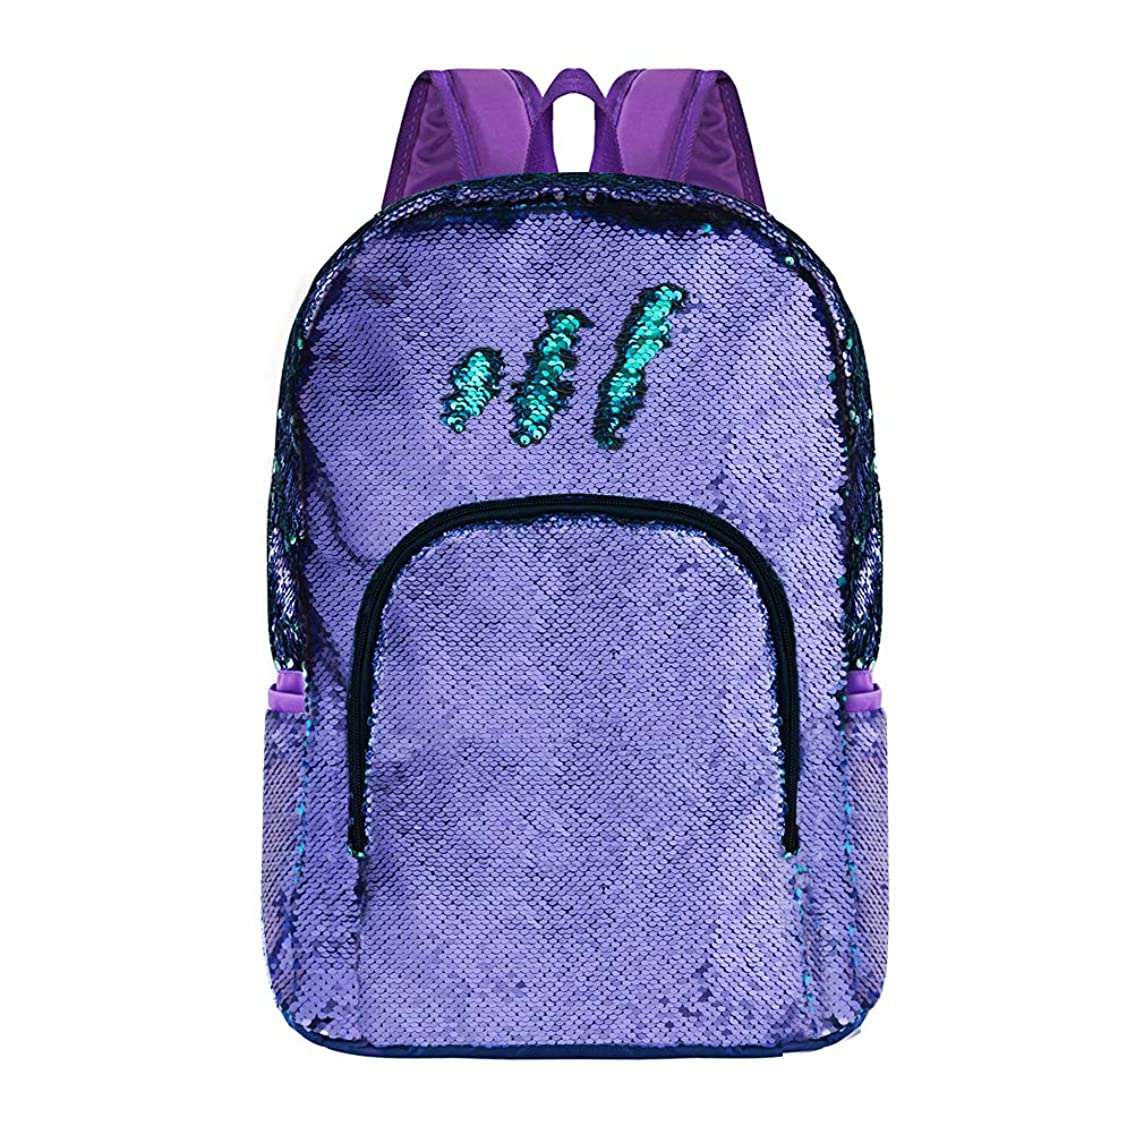 Purple Reversible Sequence Backpack Lightweight Sequin Bookbag Sparkly Back Pack